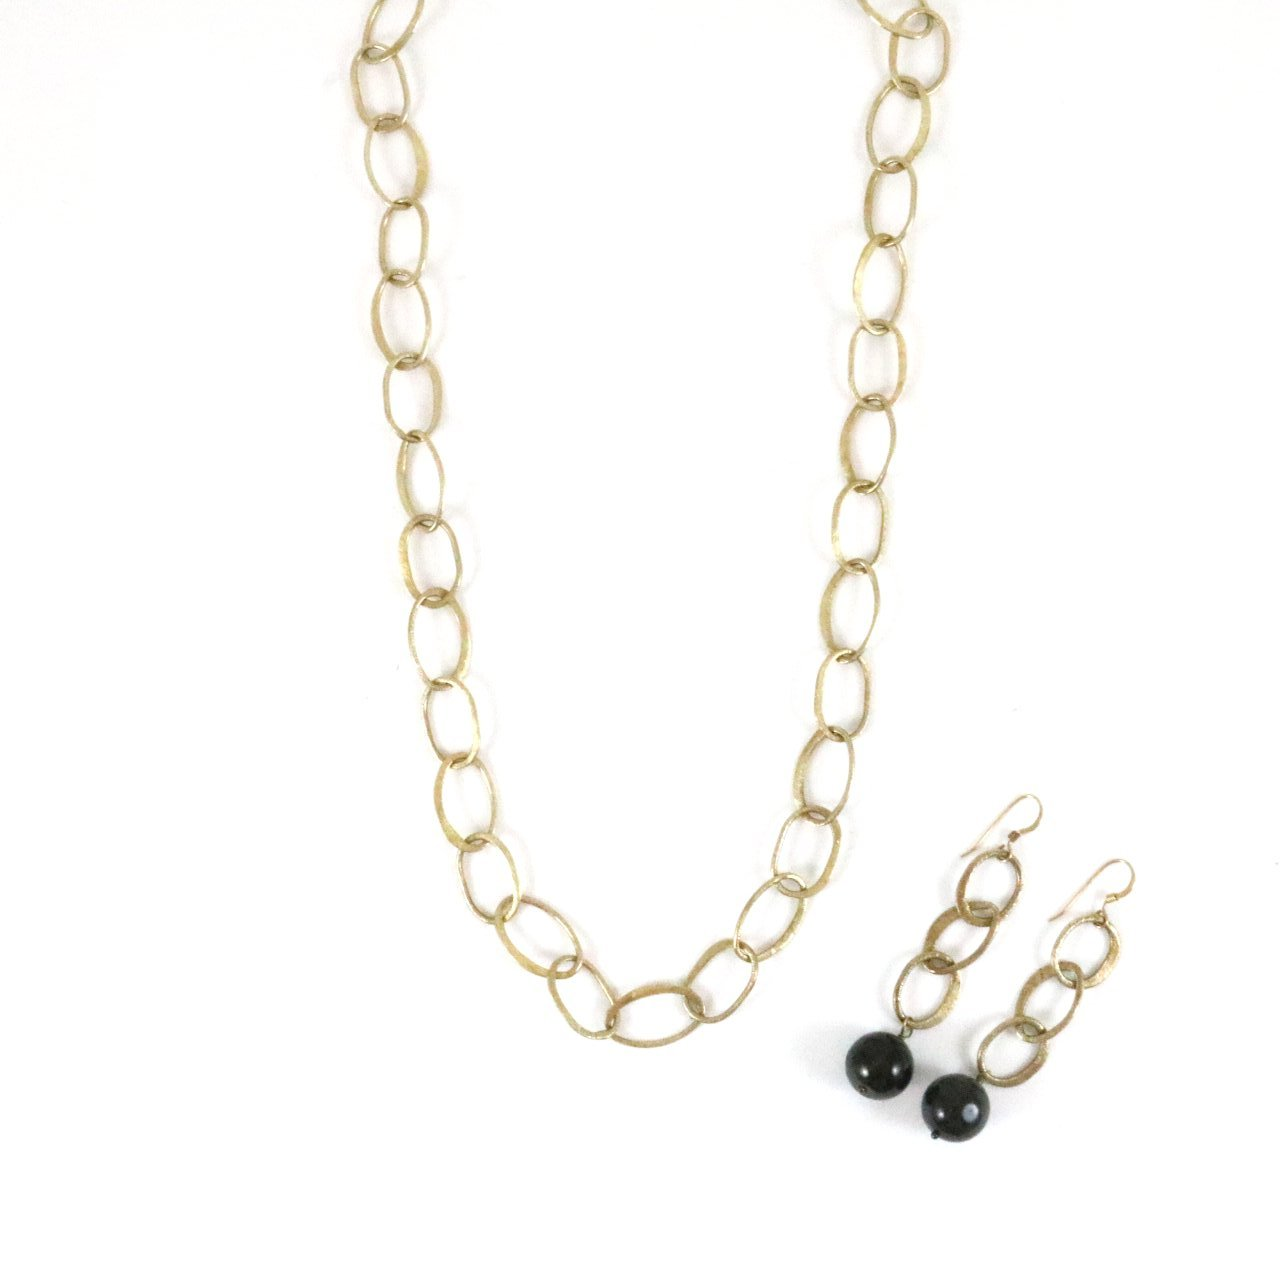 Gold Chain Dark Stone Earrings & Necklace Set